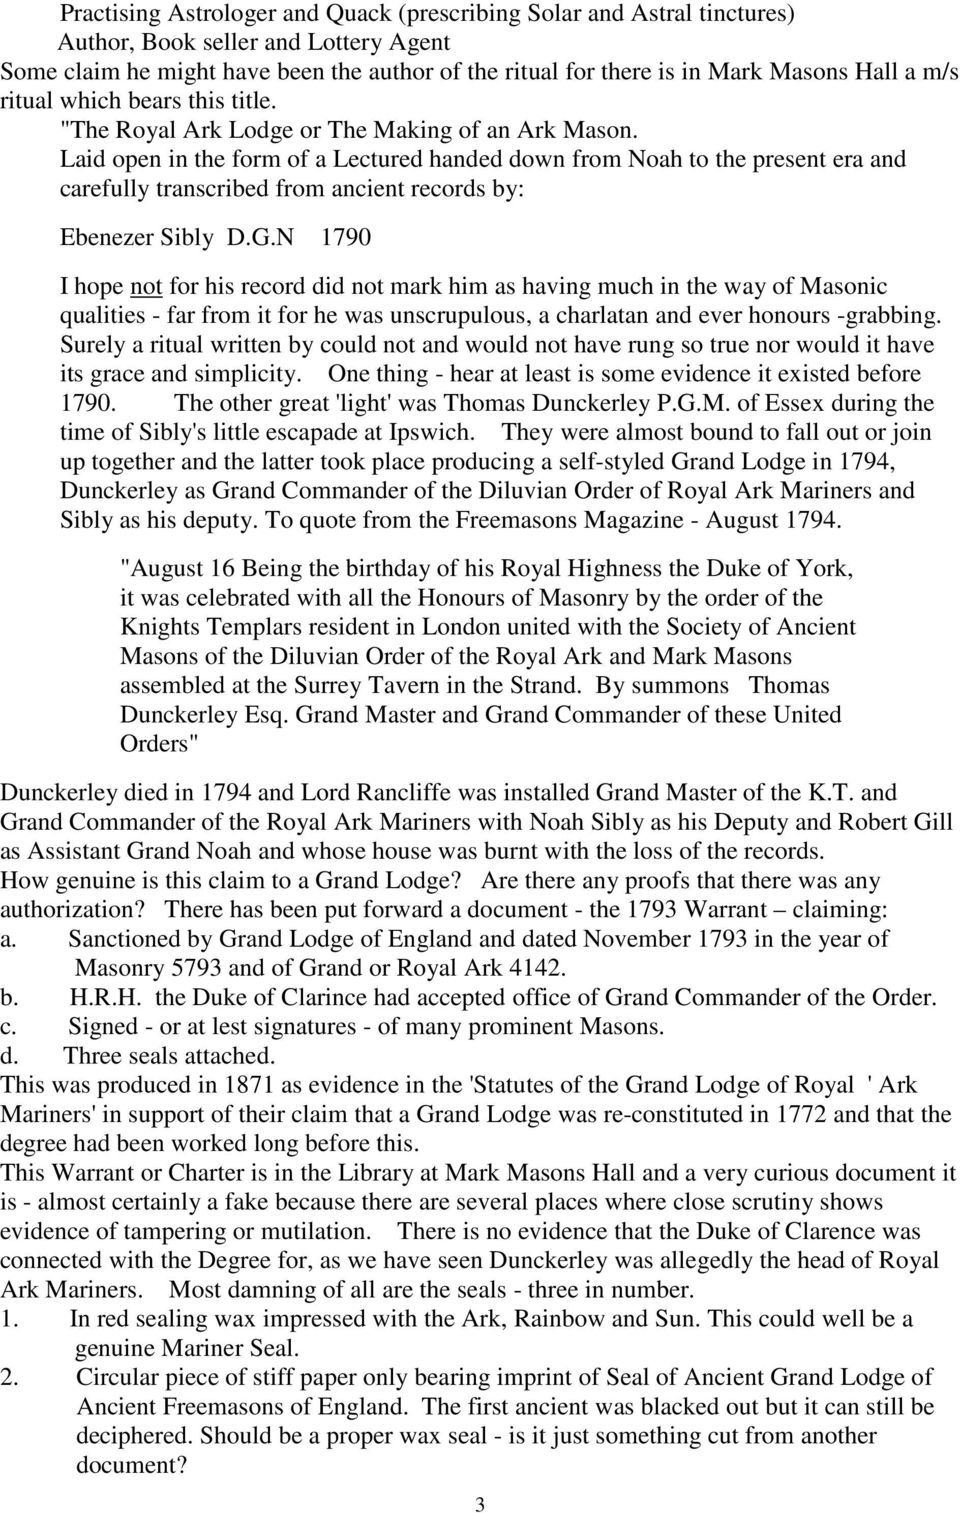 ROYAL ARK MARINERS DEGREE: ITS CHEQUERED HISTORY  W H H Lane - PDF